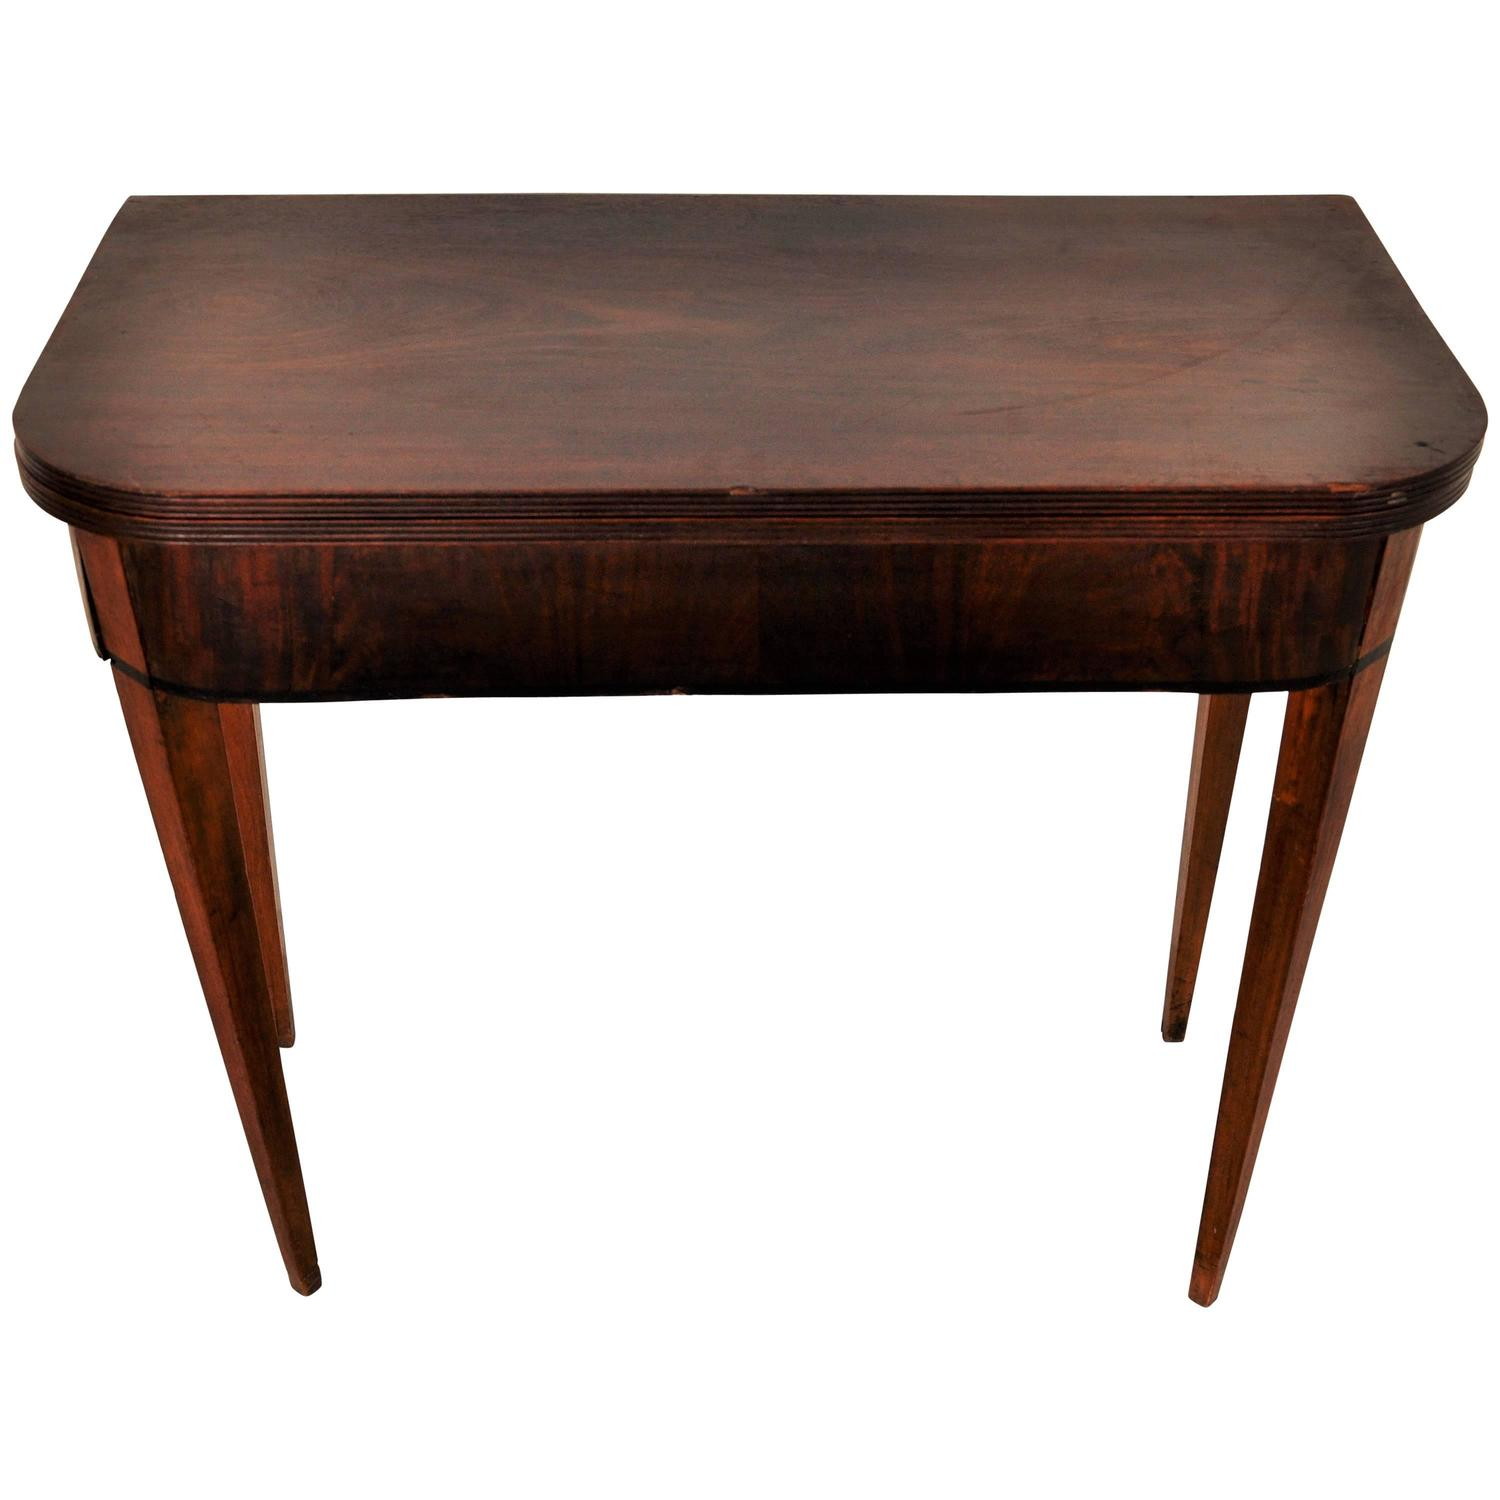 Hinged Art Deco Game Table and Console at 1stdibs : 5044273z from www.1stdibs.com size 1500 x 1500 jpeg 84kB